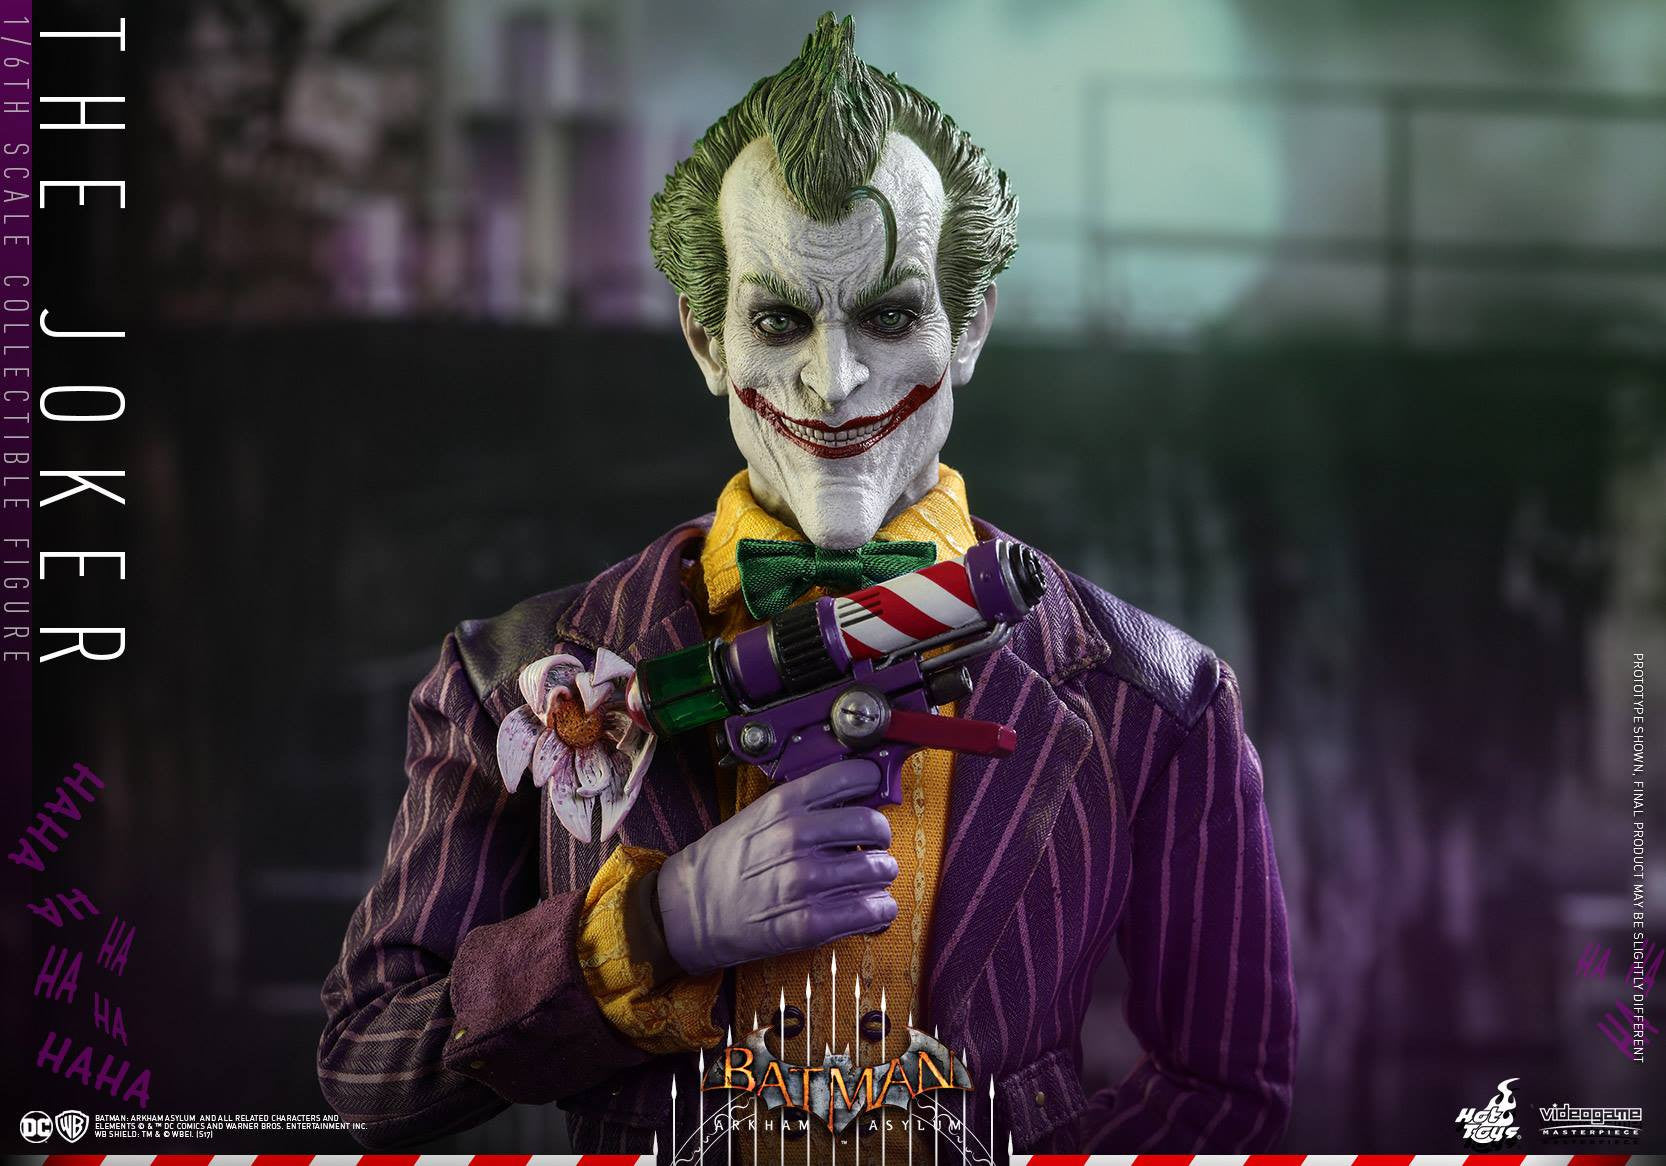 Hot Toys - VGM27 - Batman: Arkham Asylum - The Joker - Marvelous Toys - 2